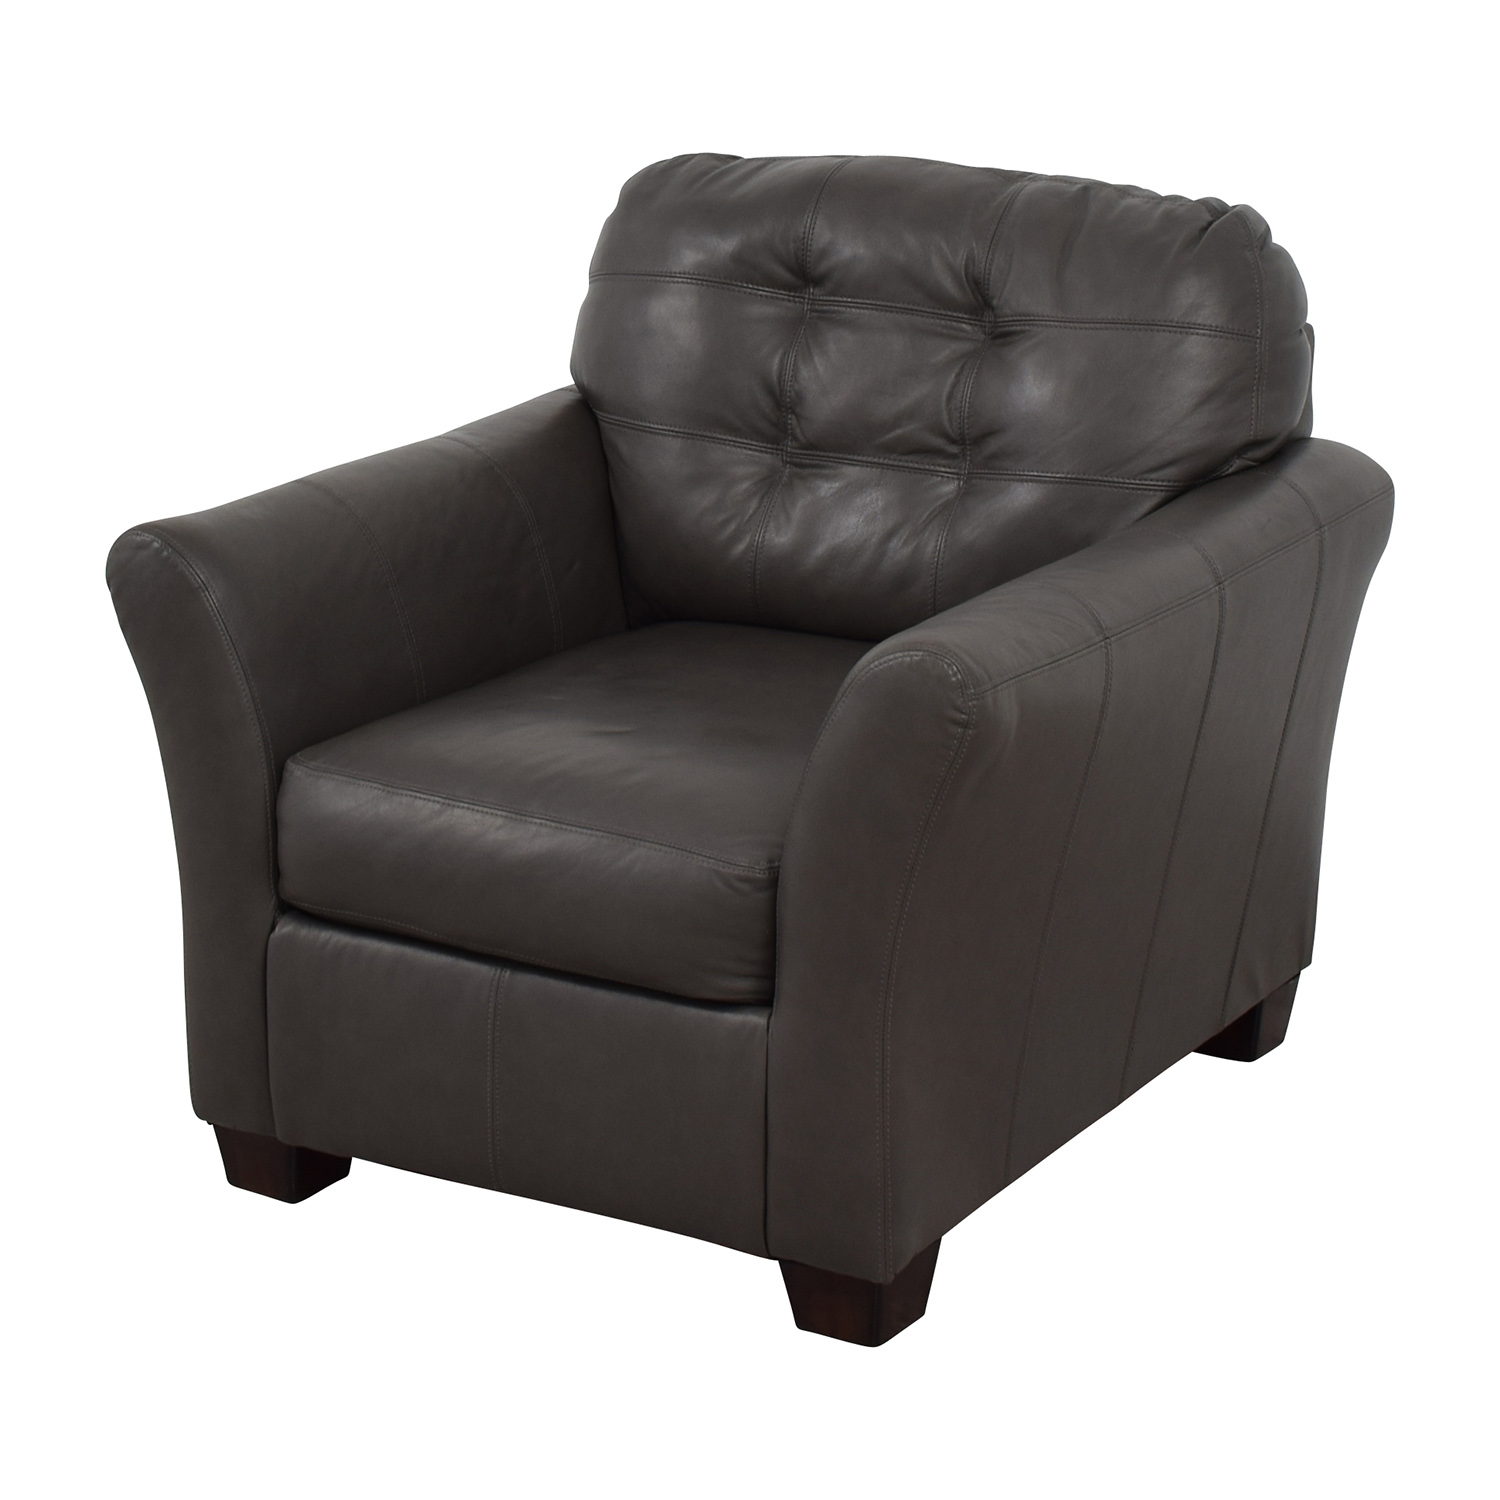 53 OFF  Ashley Furniture Ashley Furniture Gray Leather